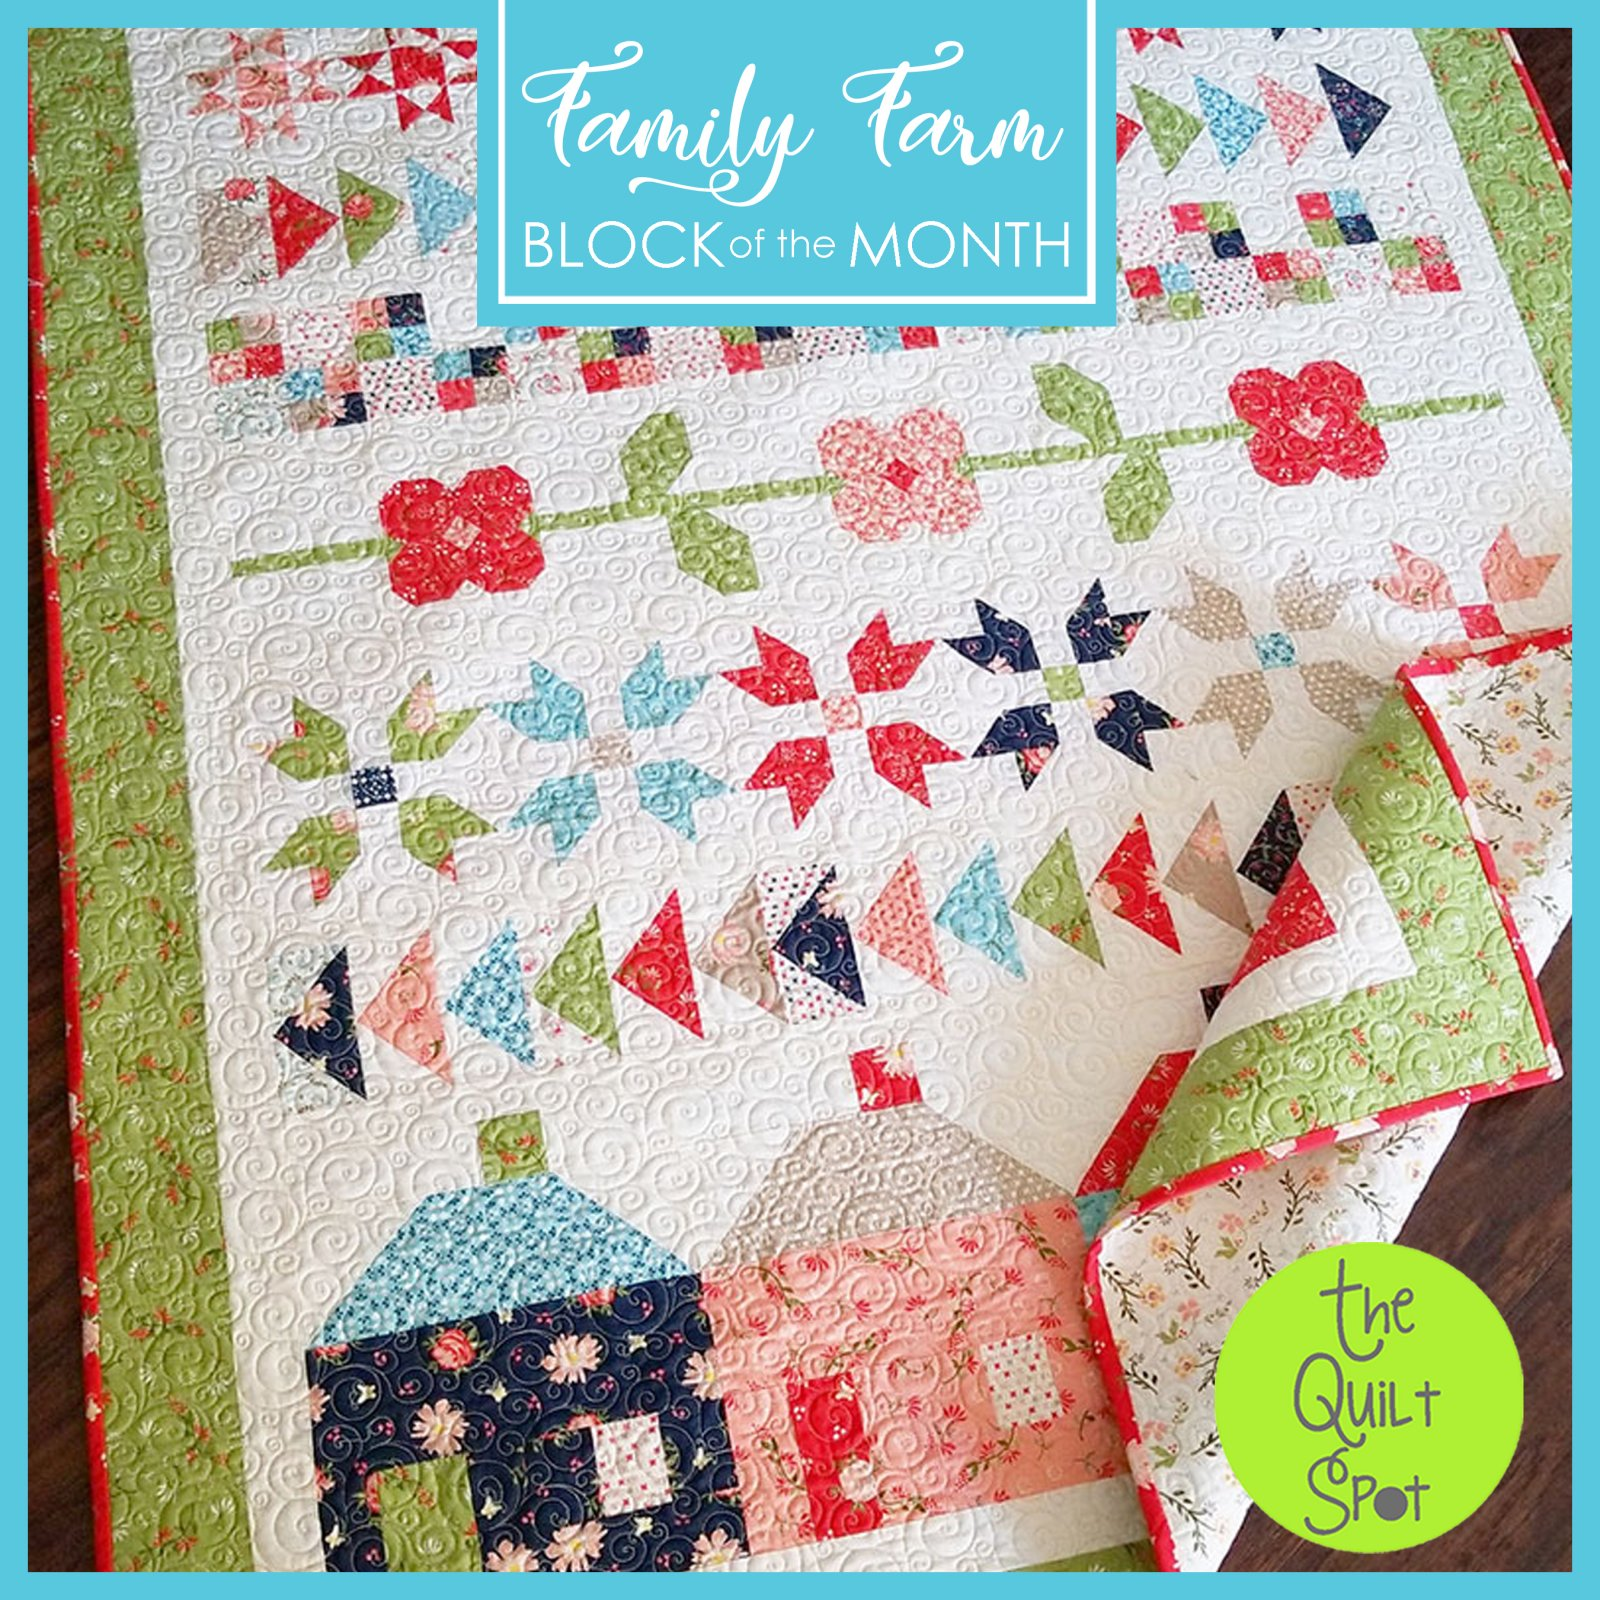 Family Farm Block of the Month by Sherri & Chelsi of A Quilting Life